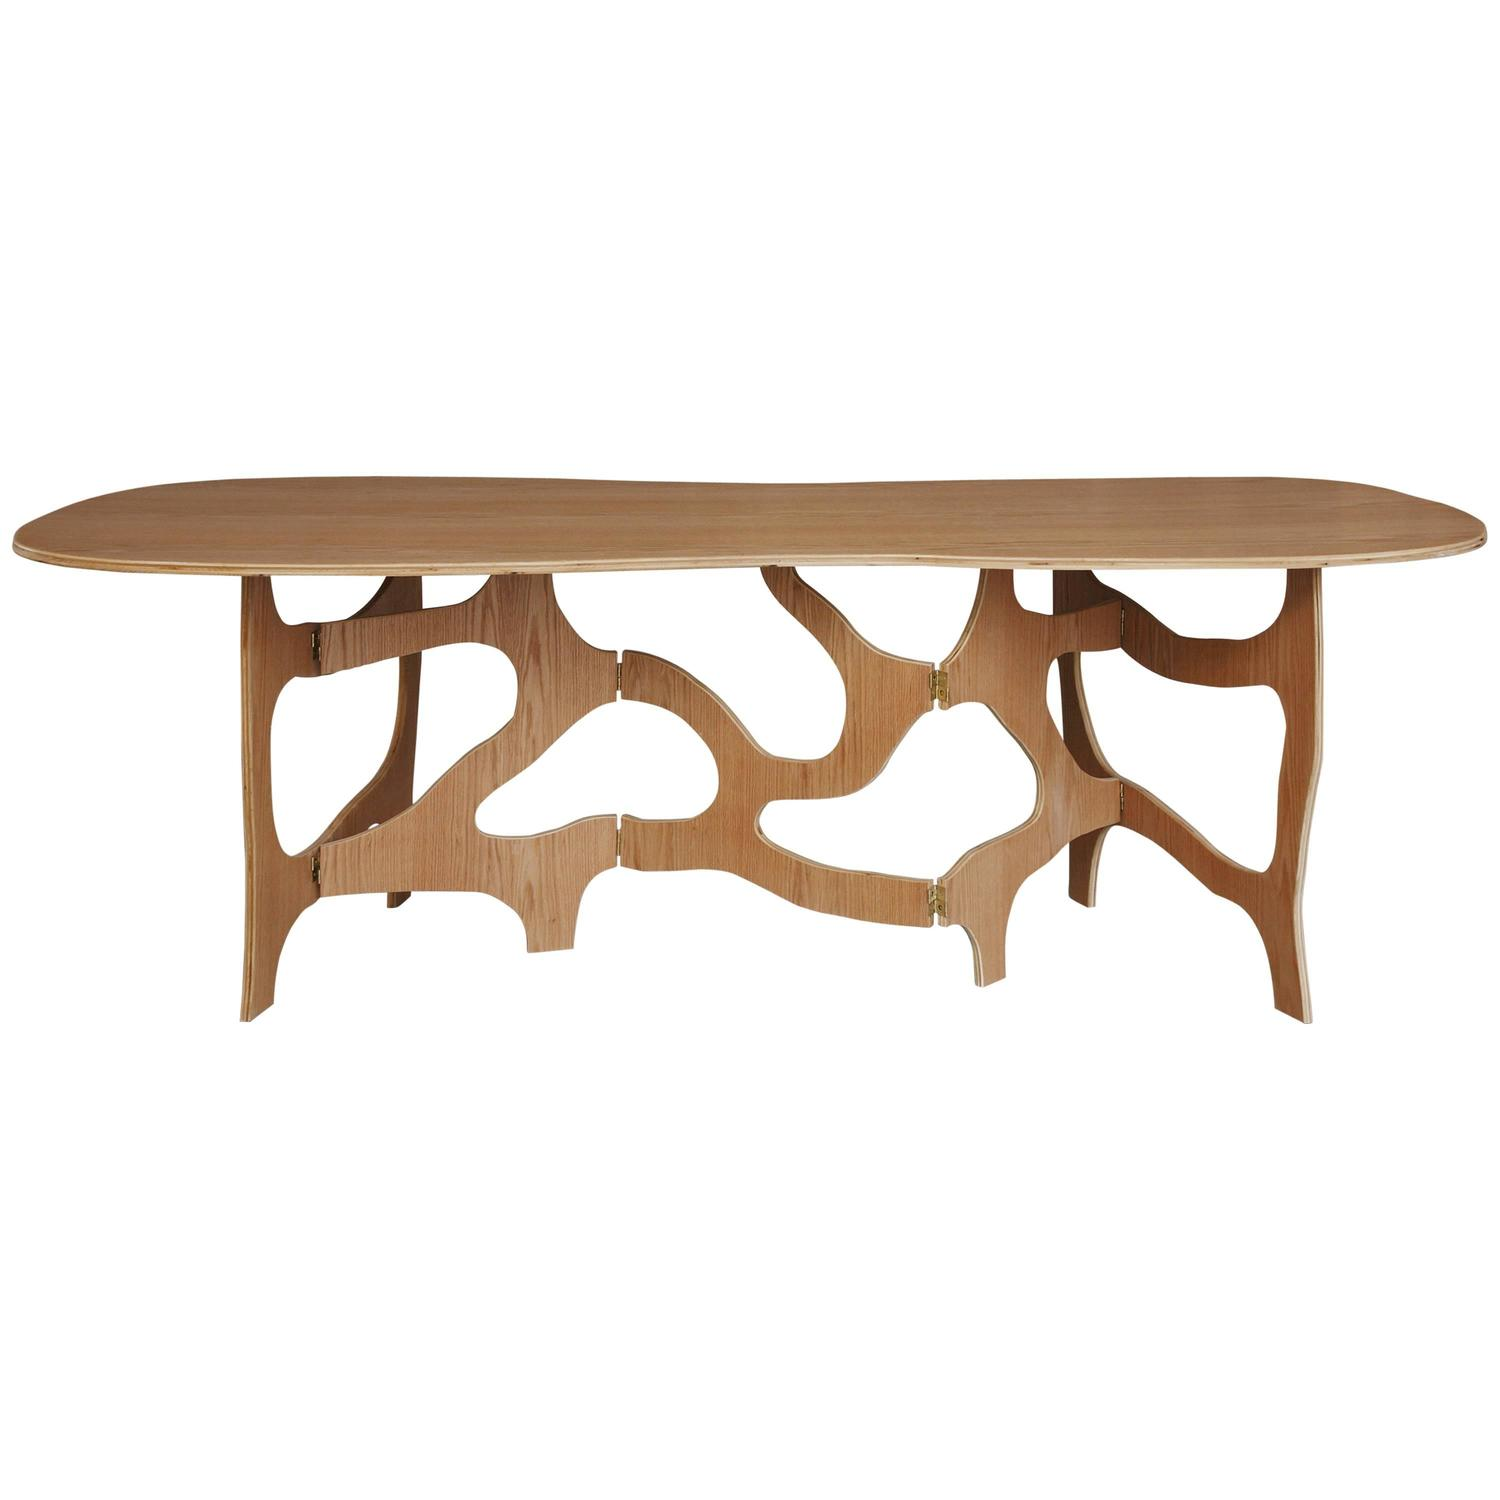 Michael taylor cyprus tree trunk dining table at 1stdibs - Michael Taylor Cyprus Tree Trunk Dining Table At 1stdibs 58